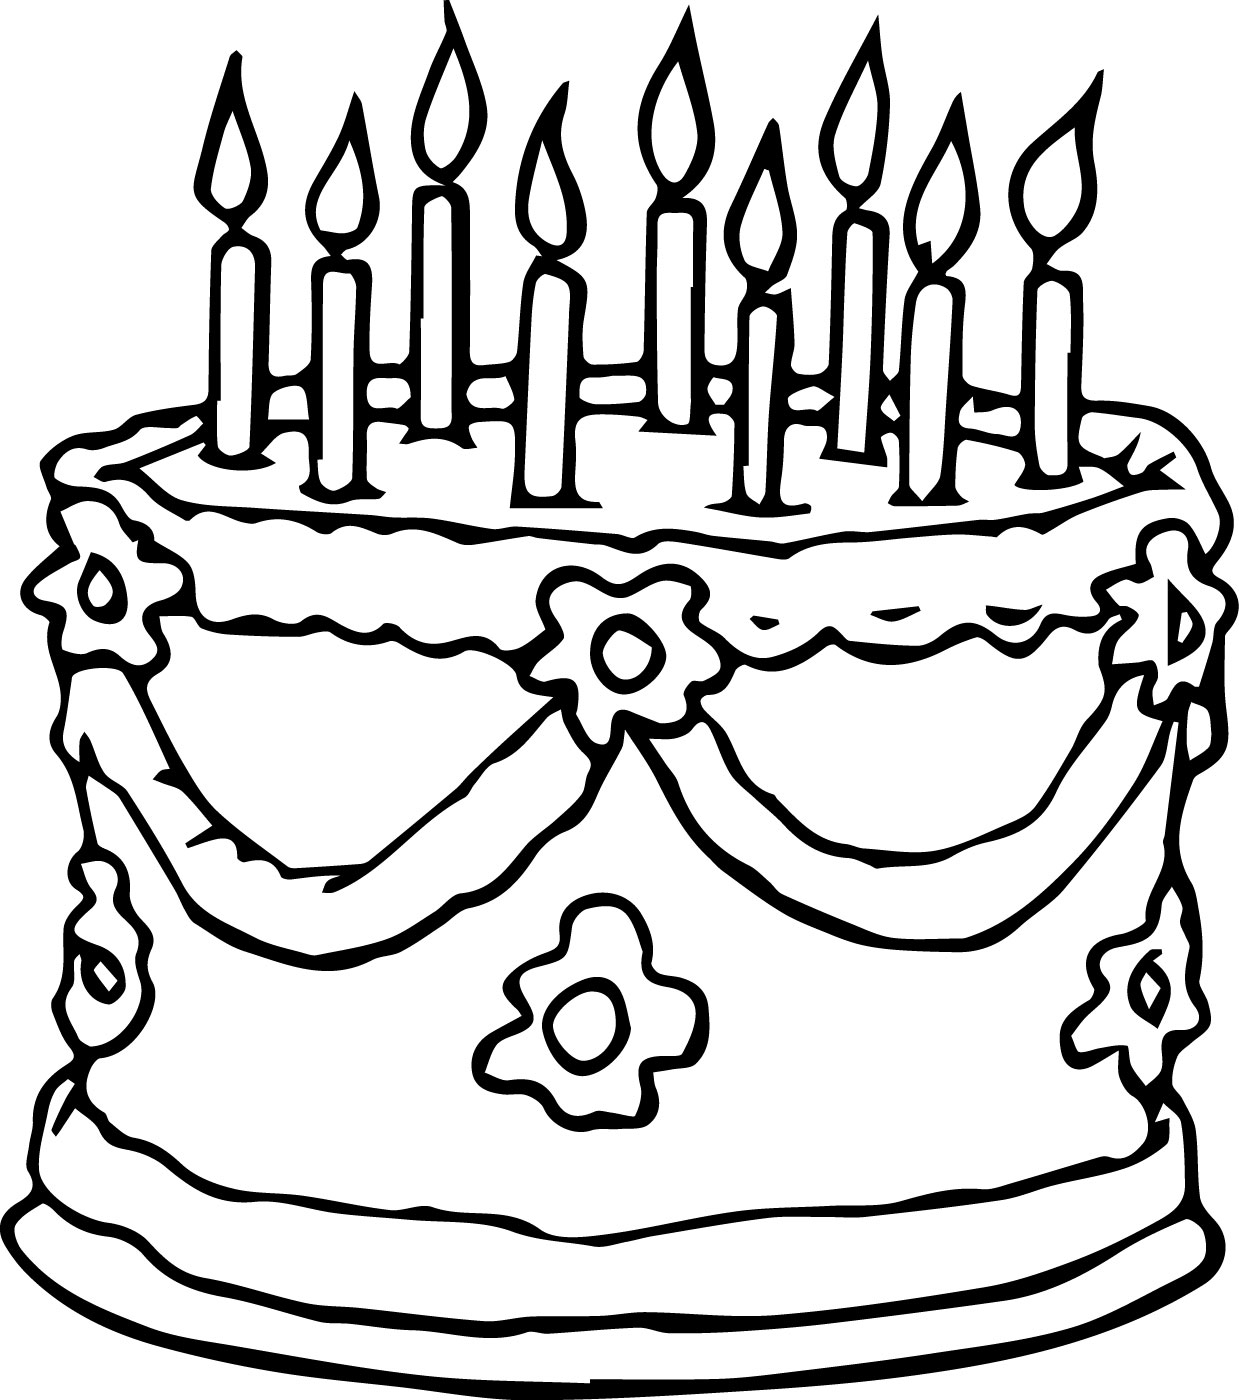 wedding birthday cake coloring page - Birthday Cake Coloring Pages